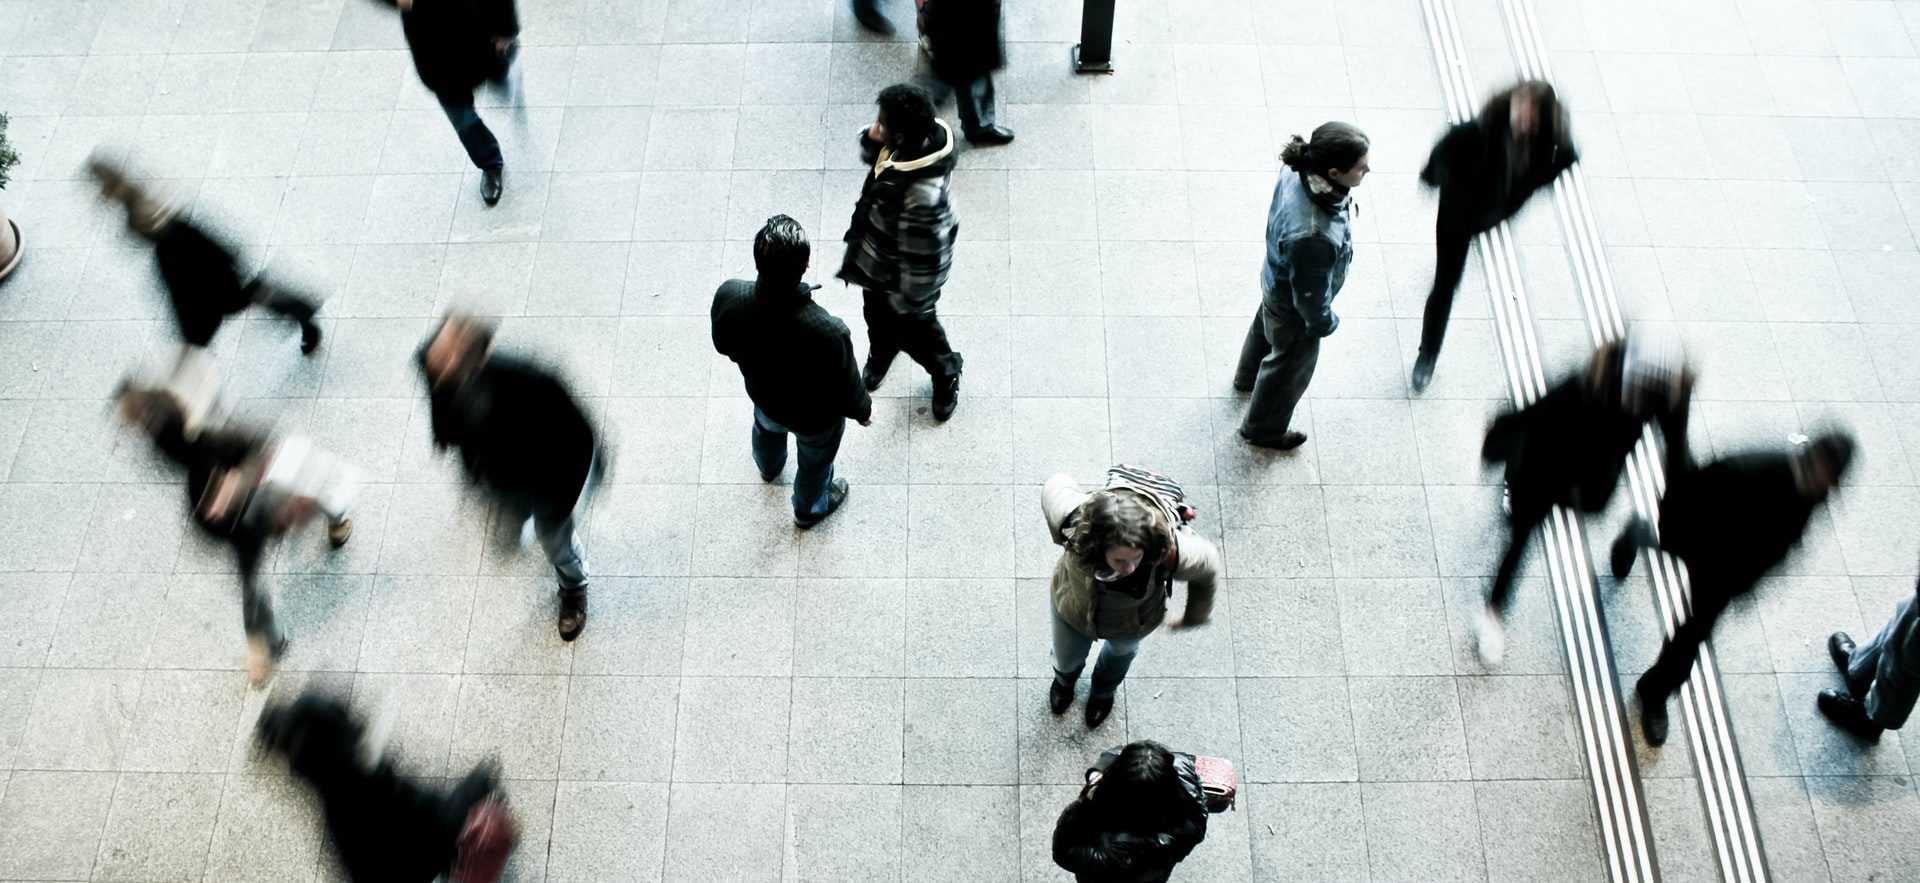 People in an open concourse commuting